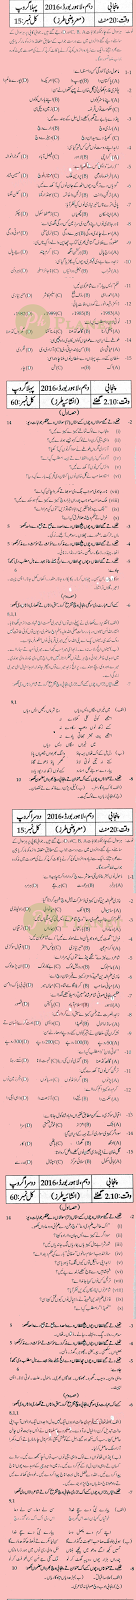 Past Papers of Punjabi 10th Class Lahore Board 2016